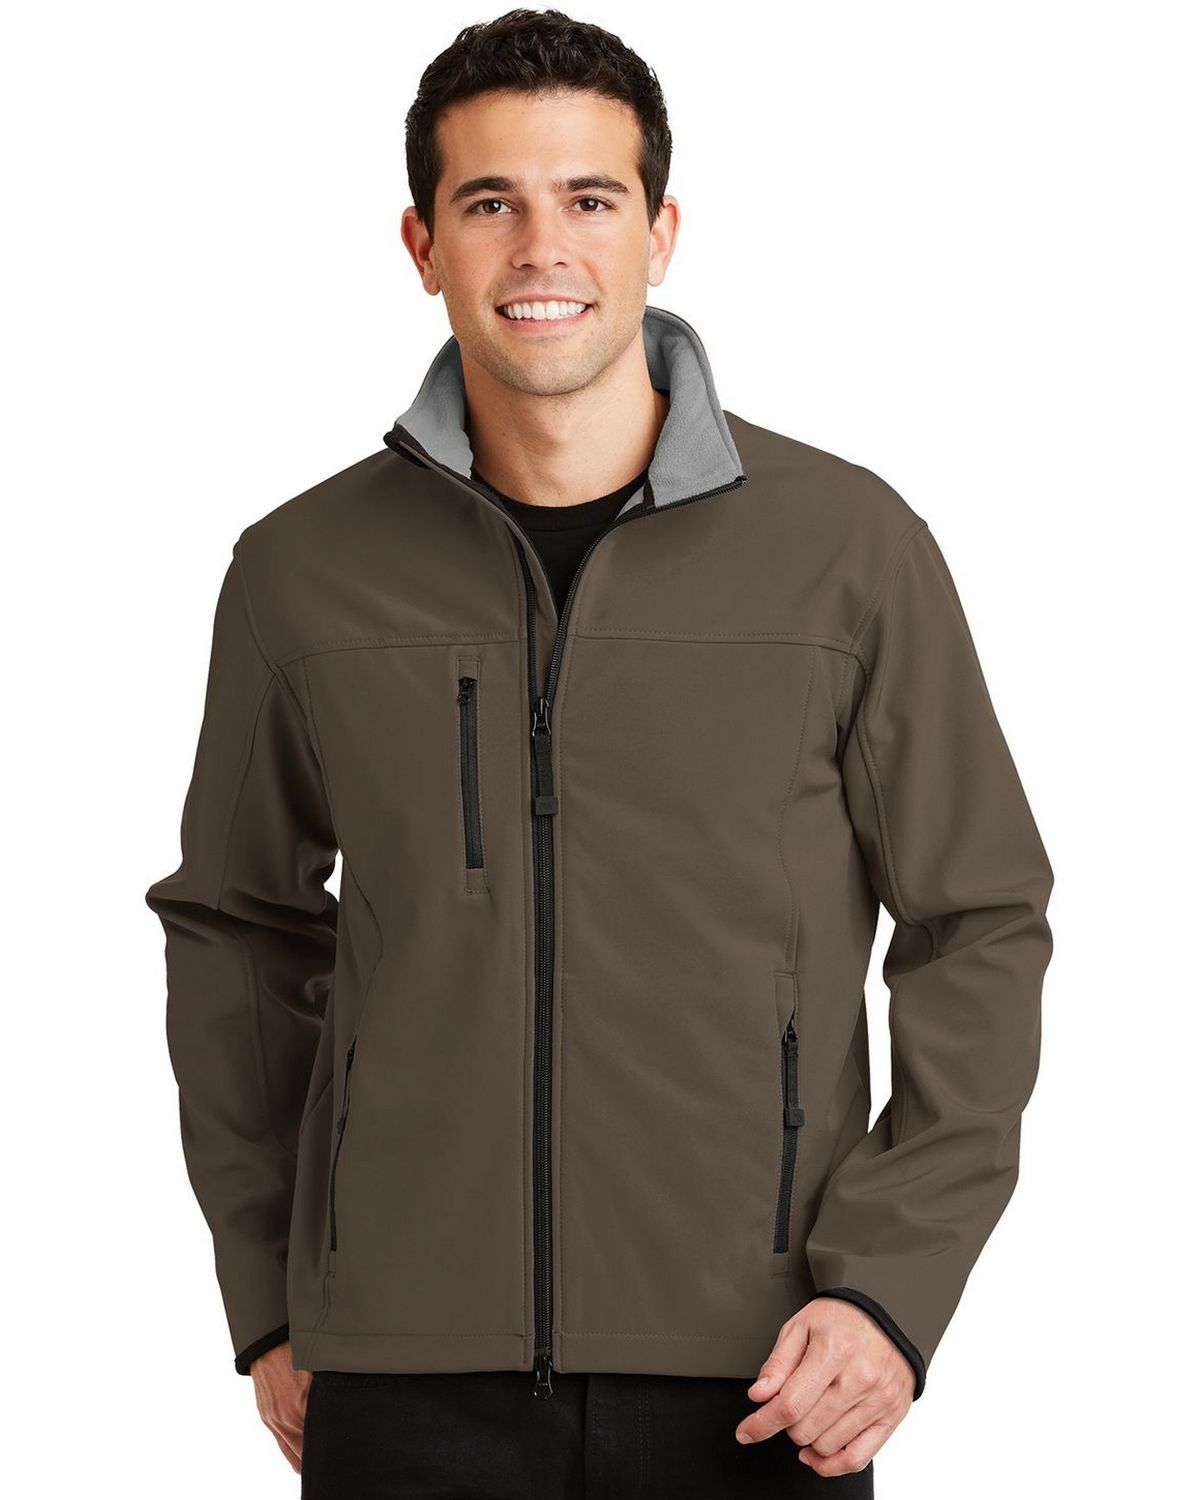 Port Authority J790 Glacier Soft Shell Jacket